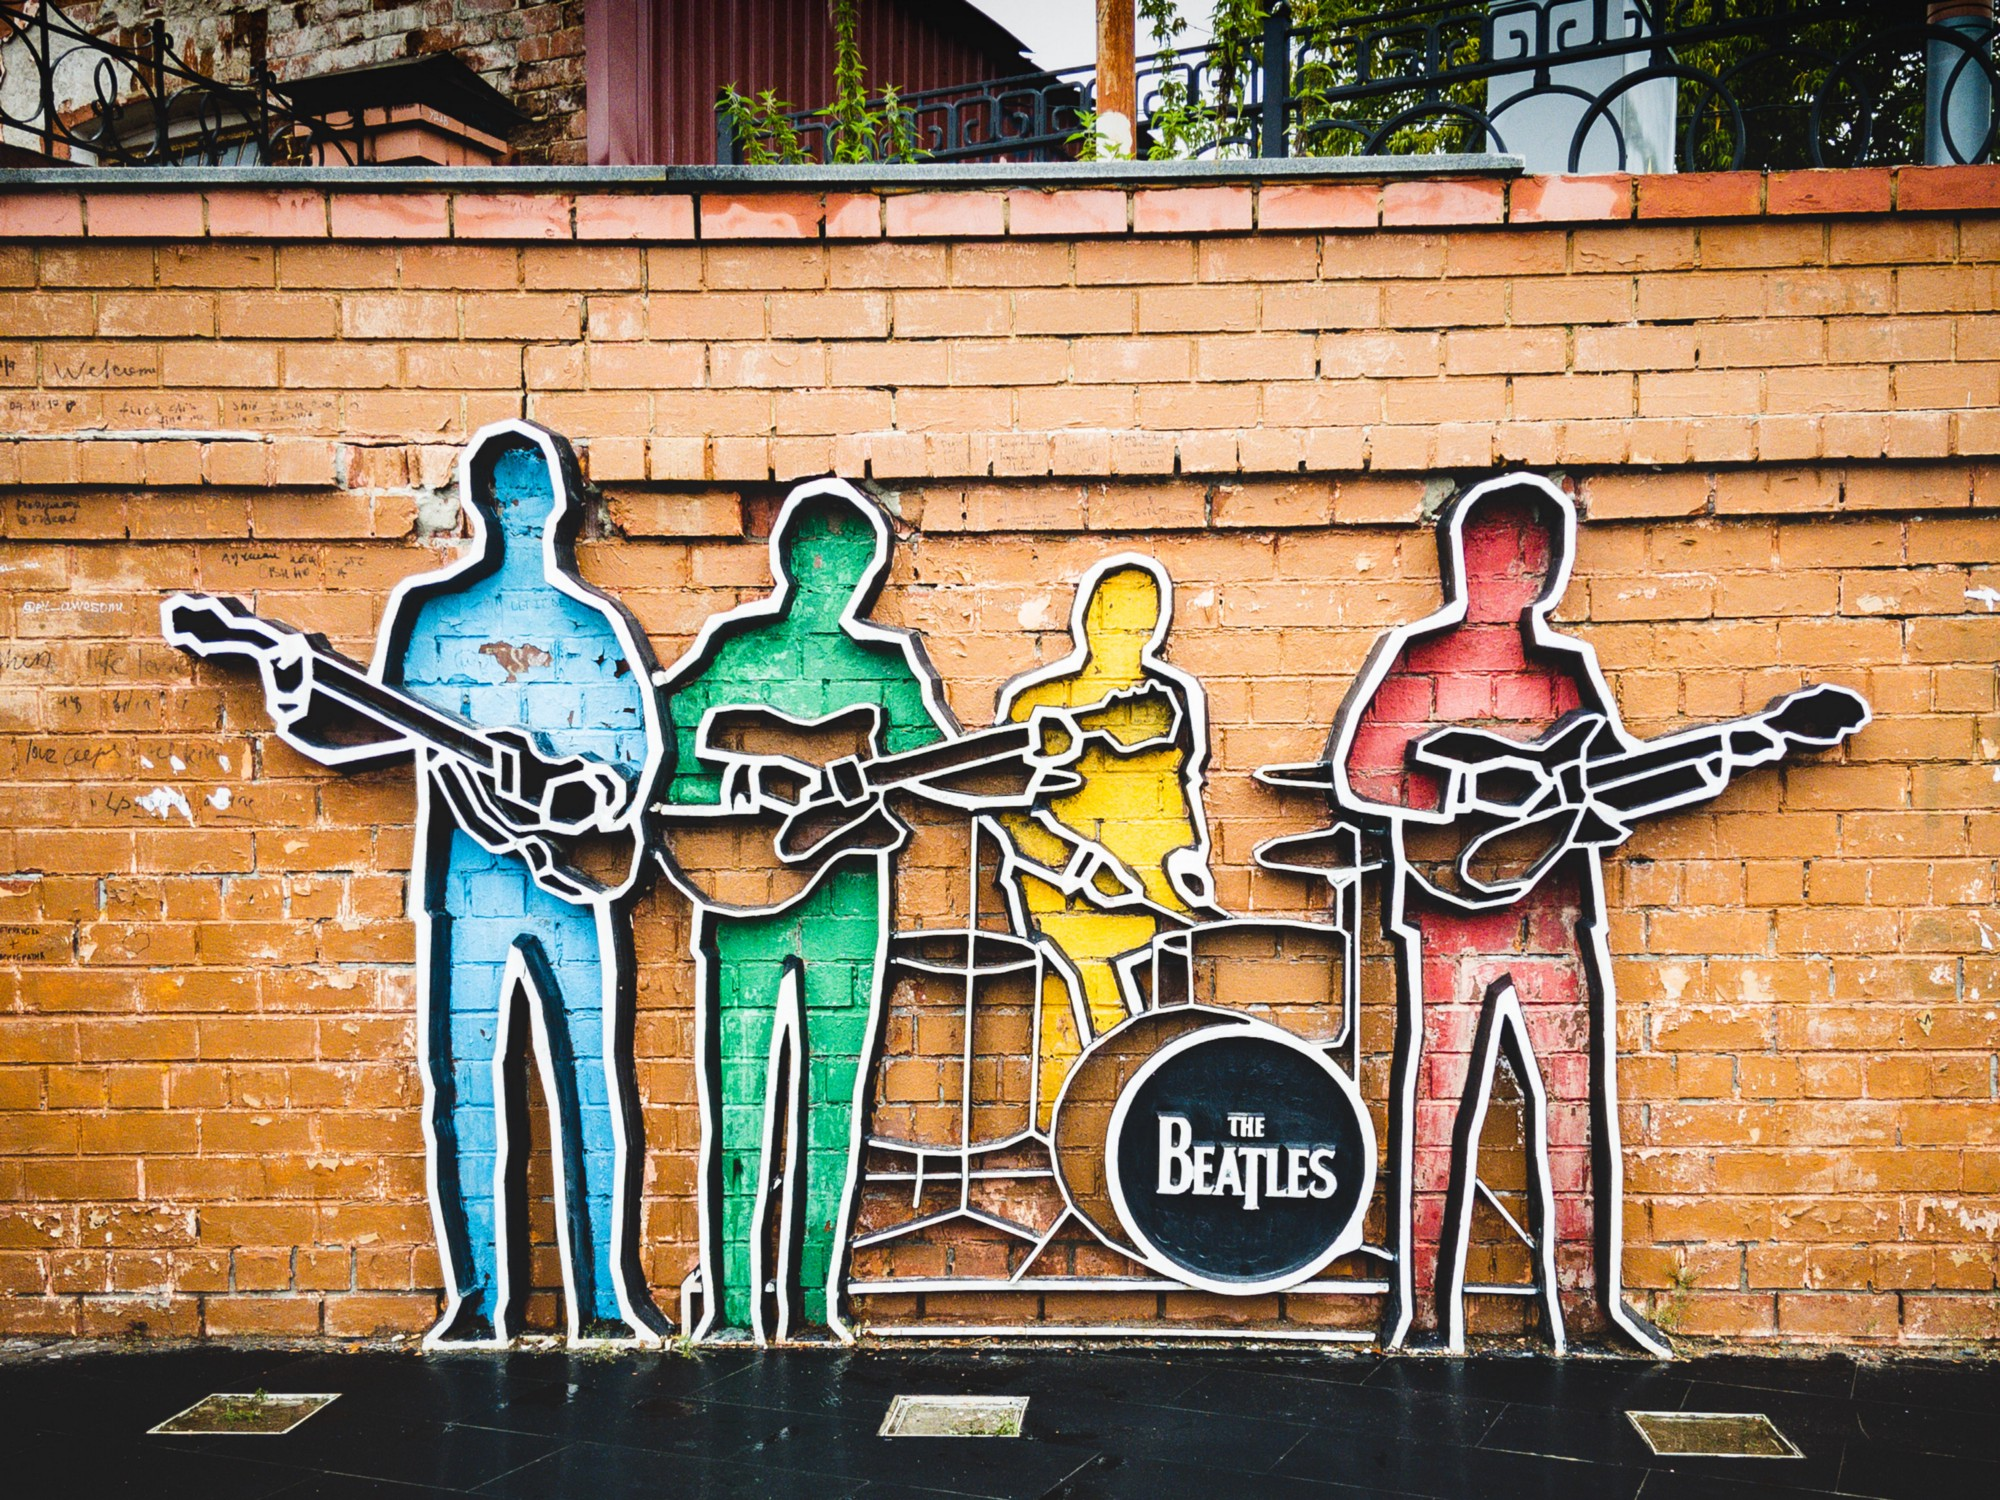 An image of colorful silhouettes of The Beatles.